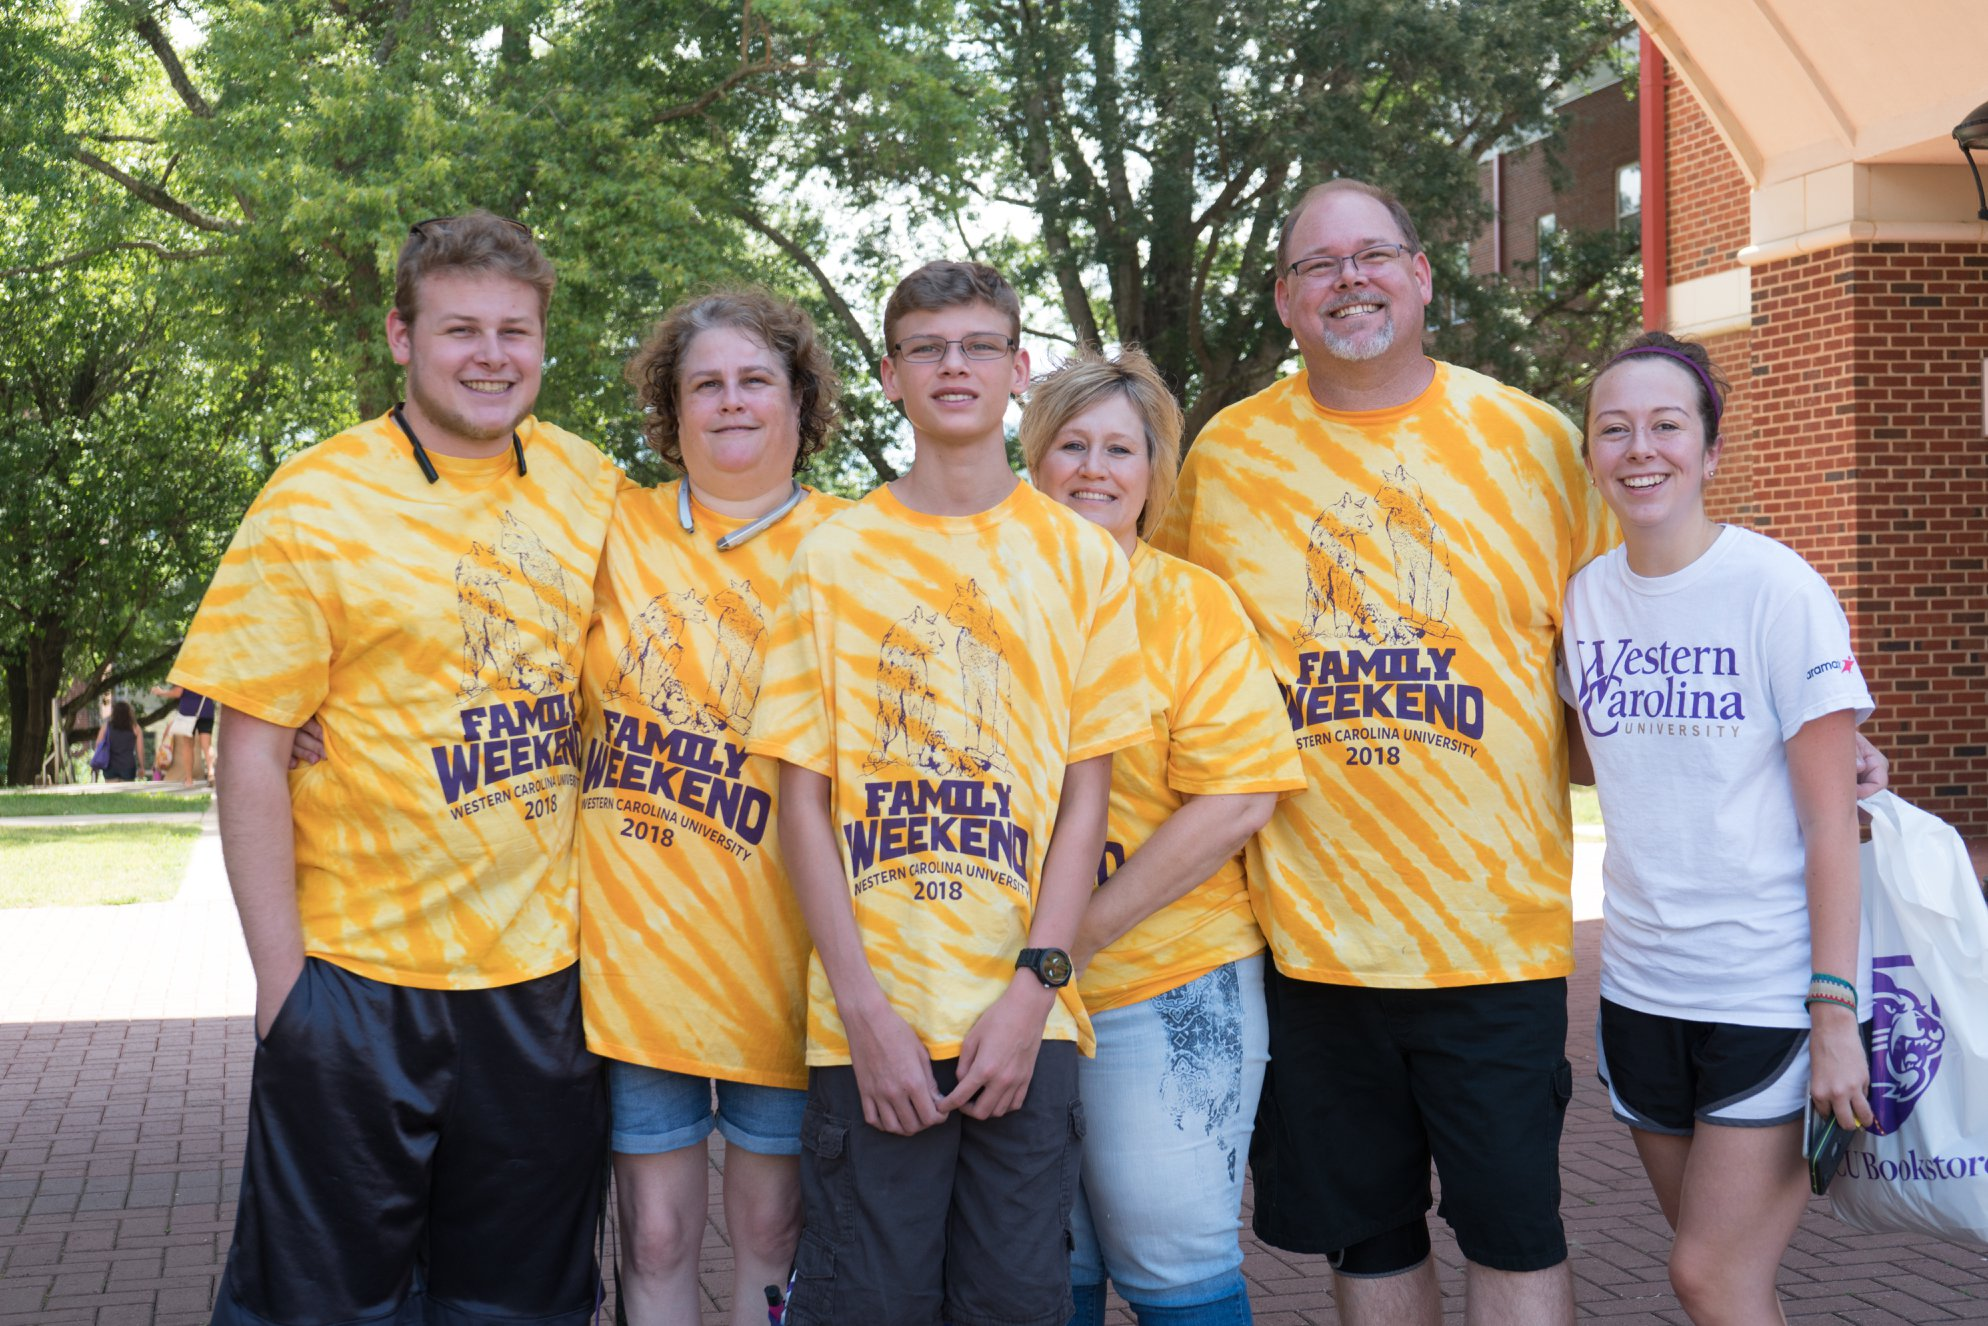 WCU Students and their Family on Family Weekend